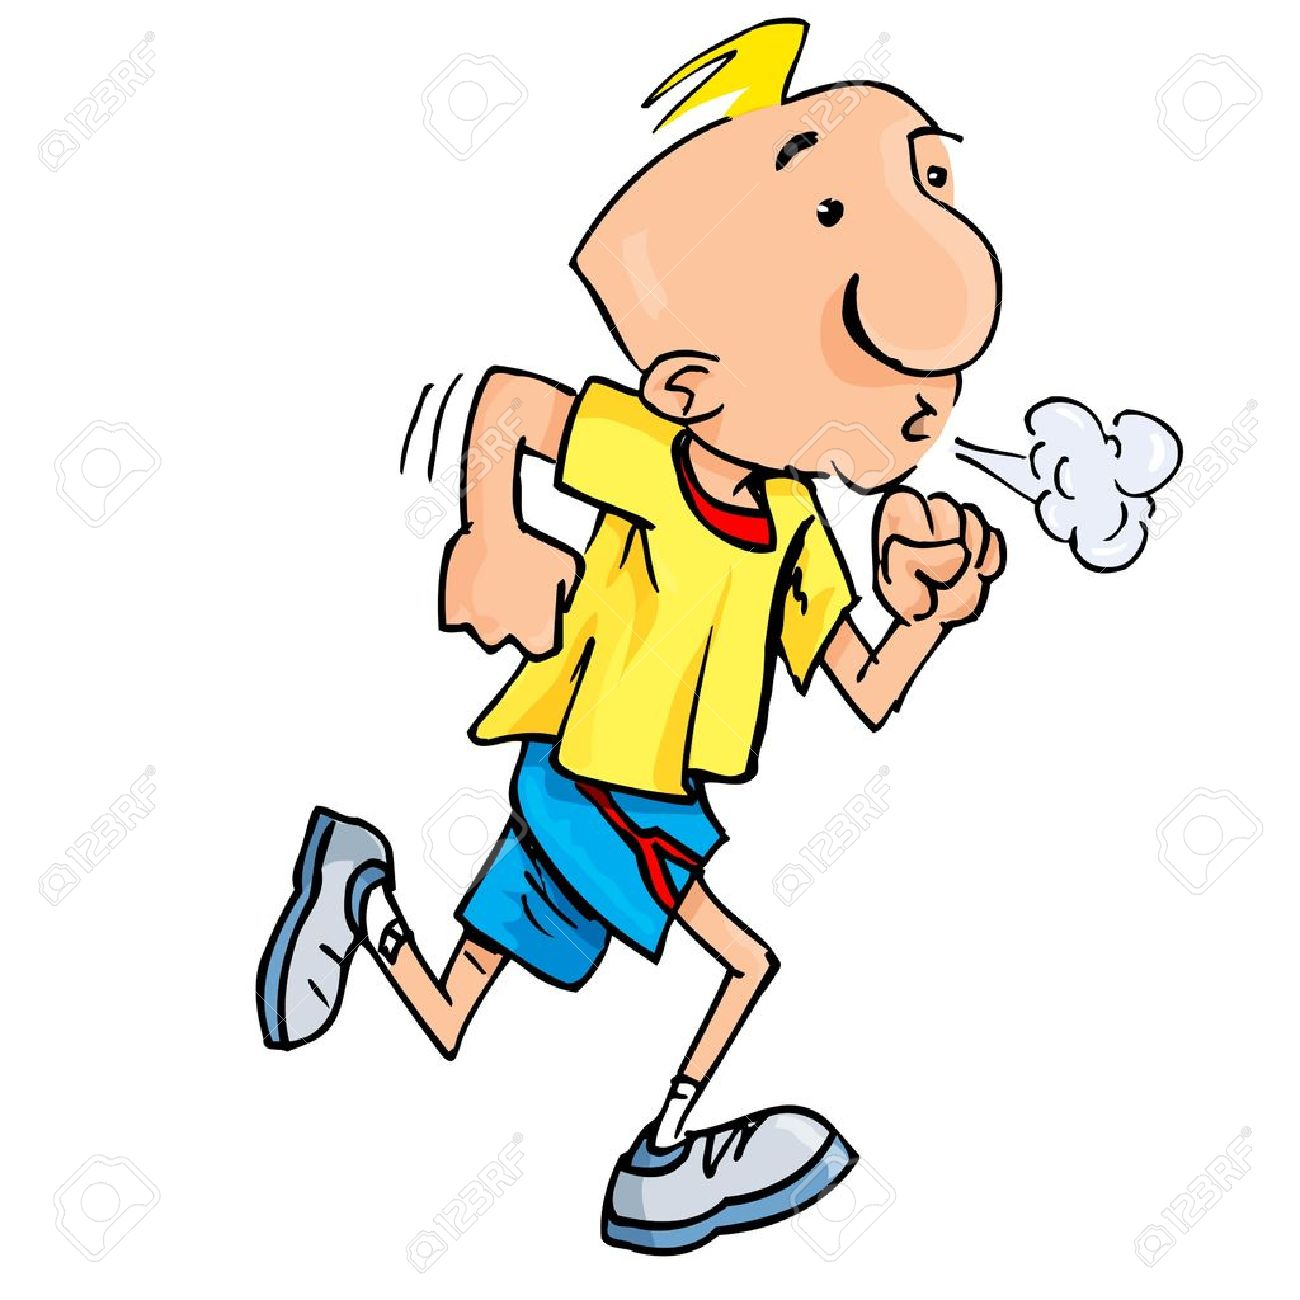 Cartoon of a jogging man puffing exertion. Isolated on white Stock Vector - 10496223